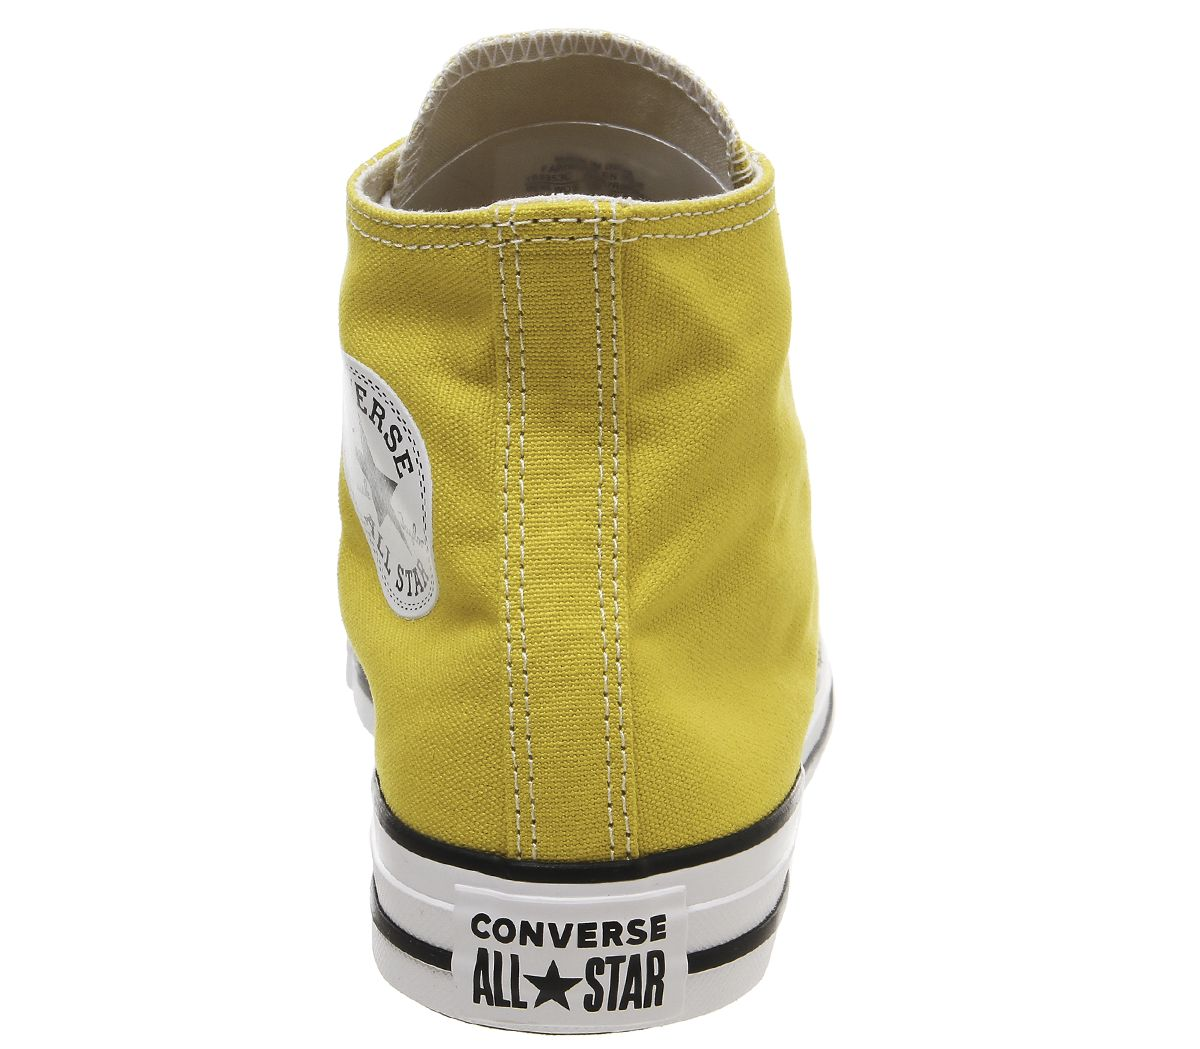 Homme-Converse-Converse-All-Star-HI-Baskets-BOLD-Citron-Baskets-Chaussures miniature 5